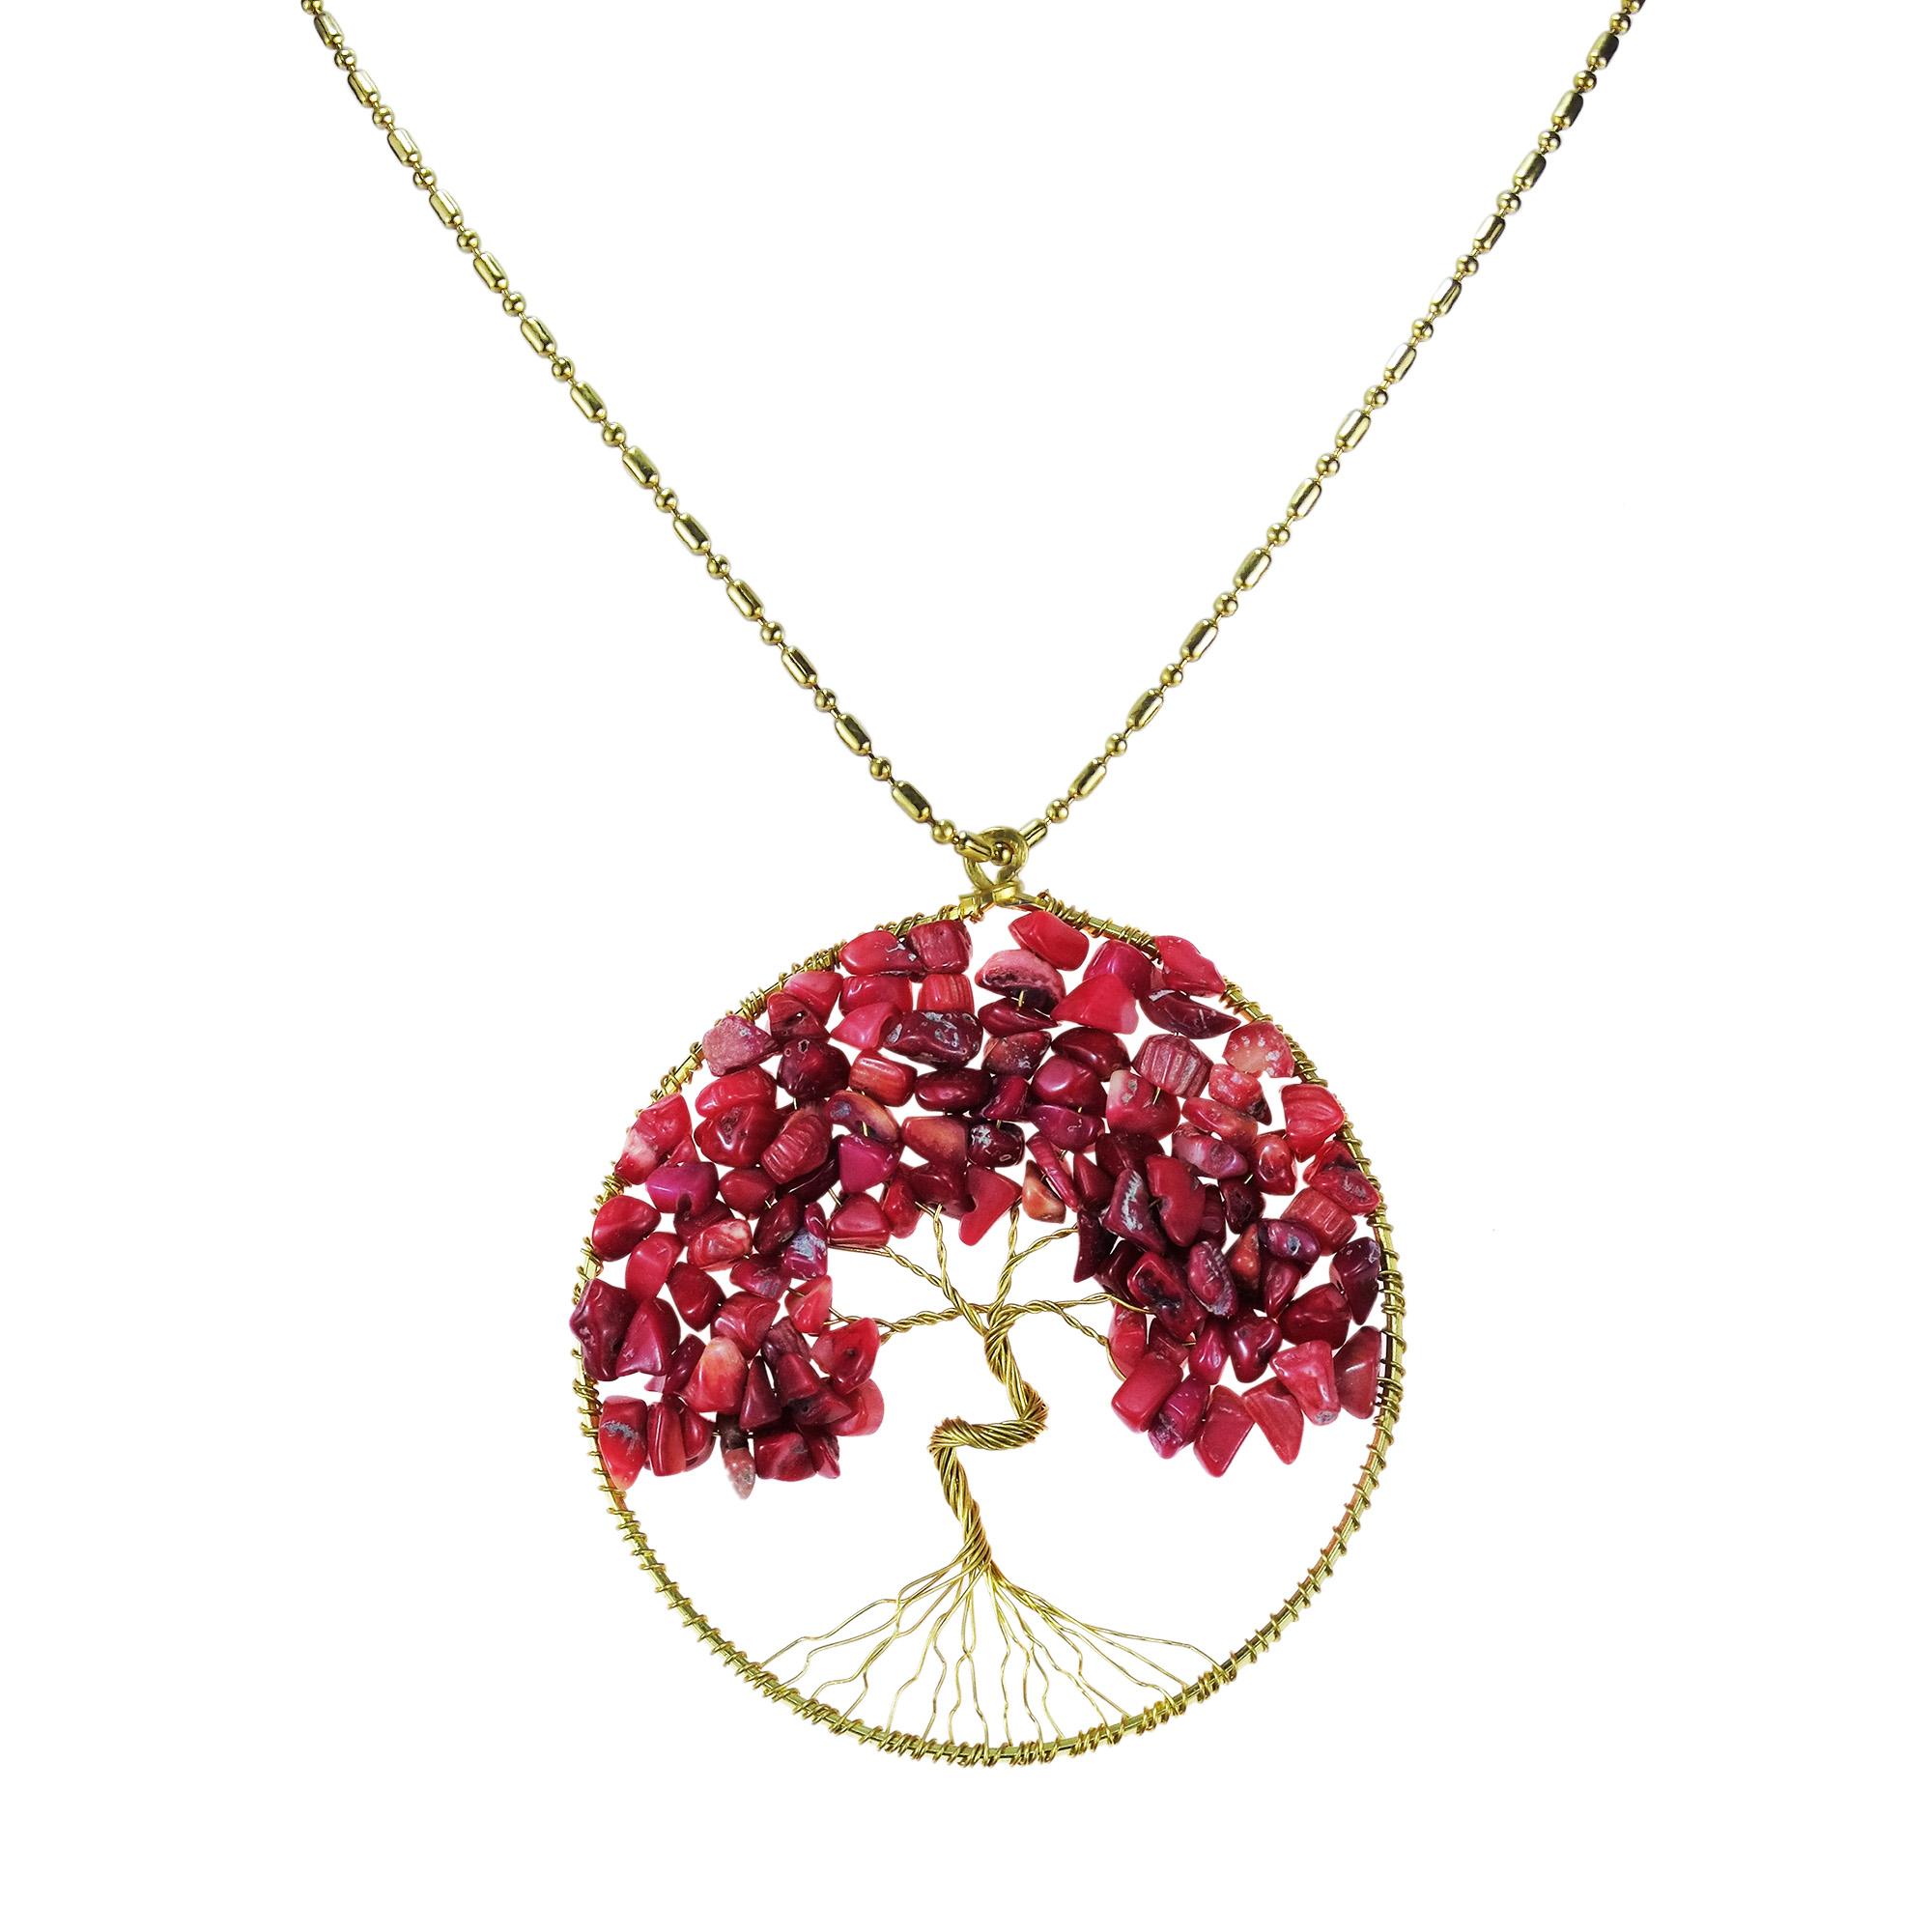 quartz necklaces necklace ruby shop rose pendant gold red